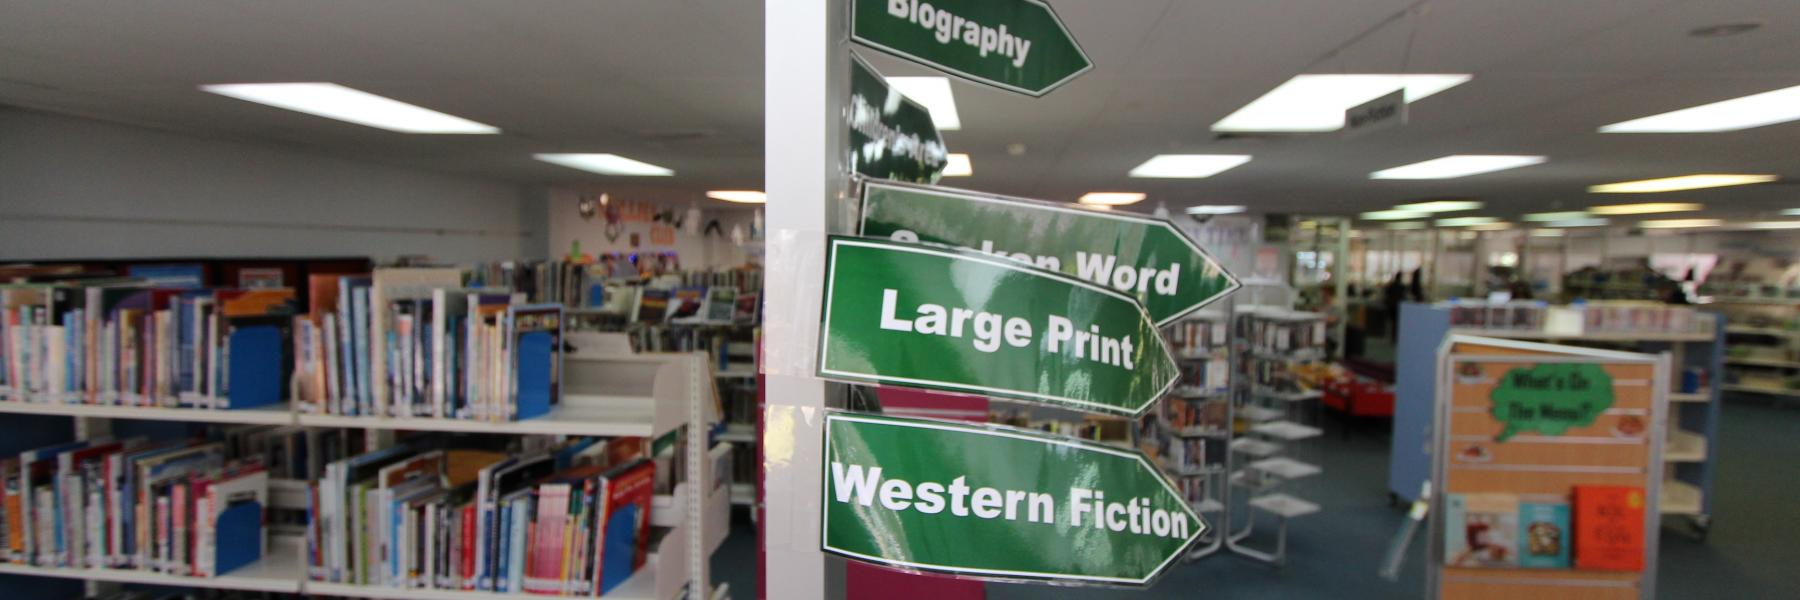 Way finding sign inside a library directing users to different areas of the library resources